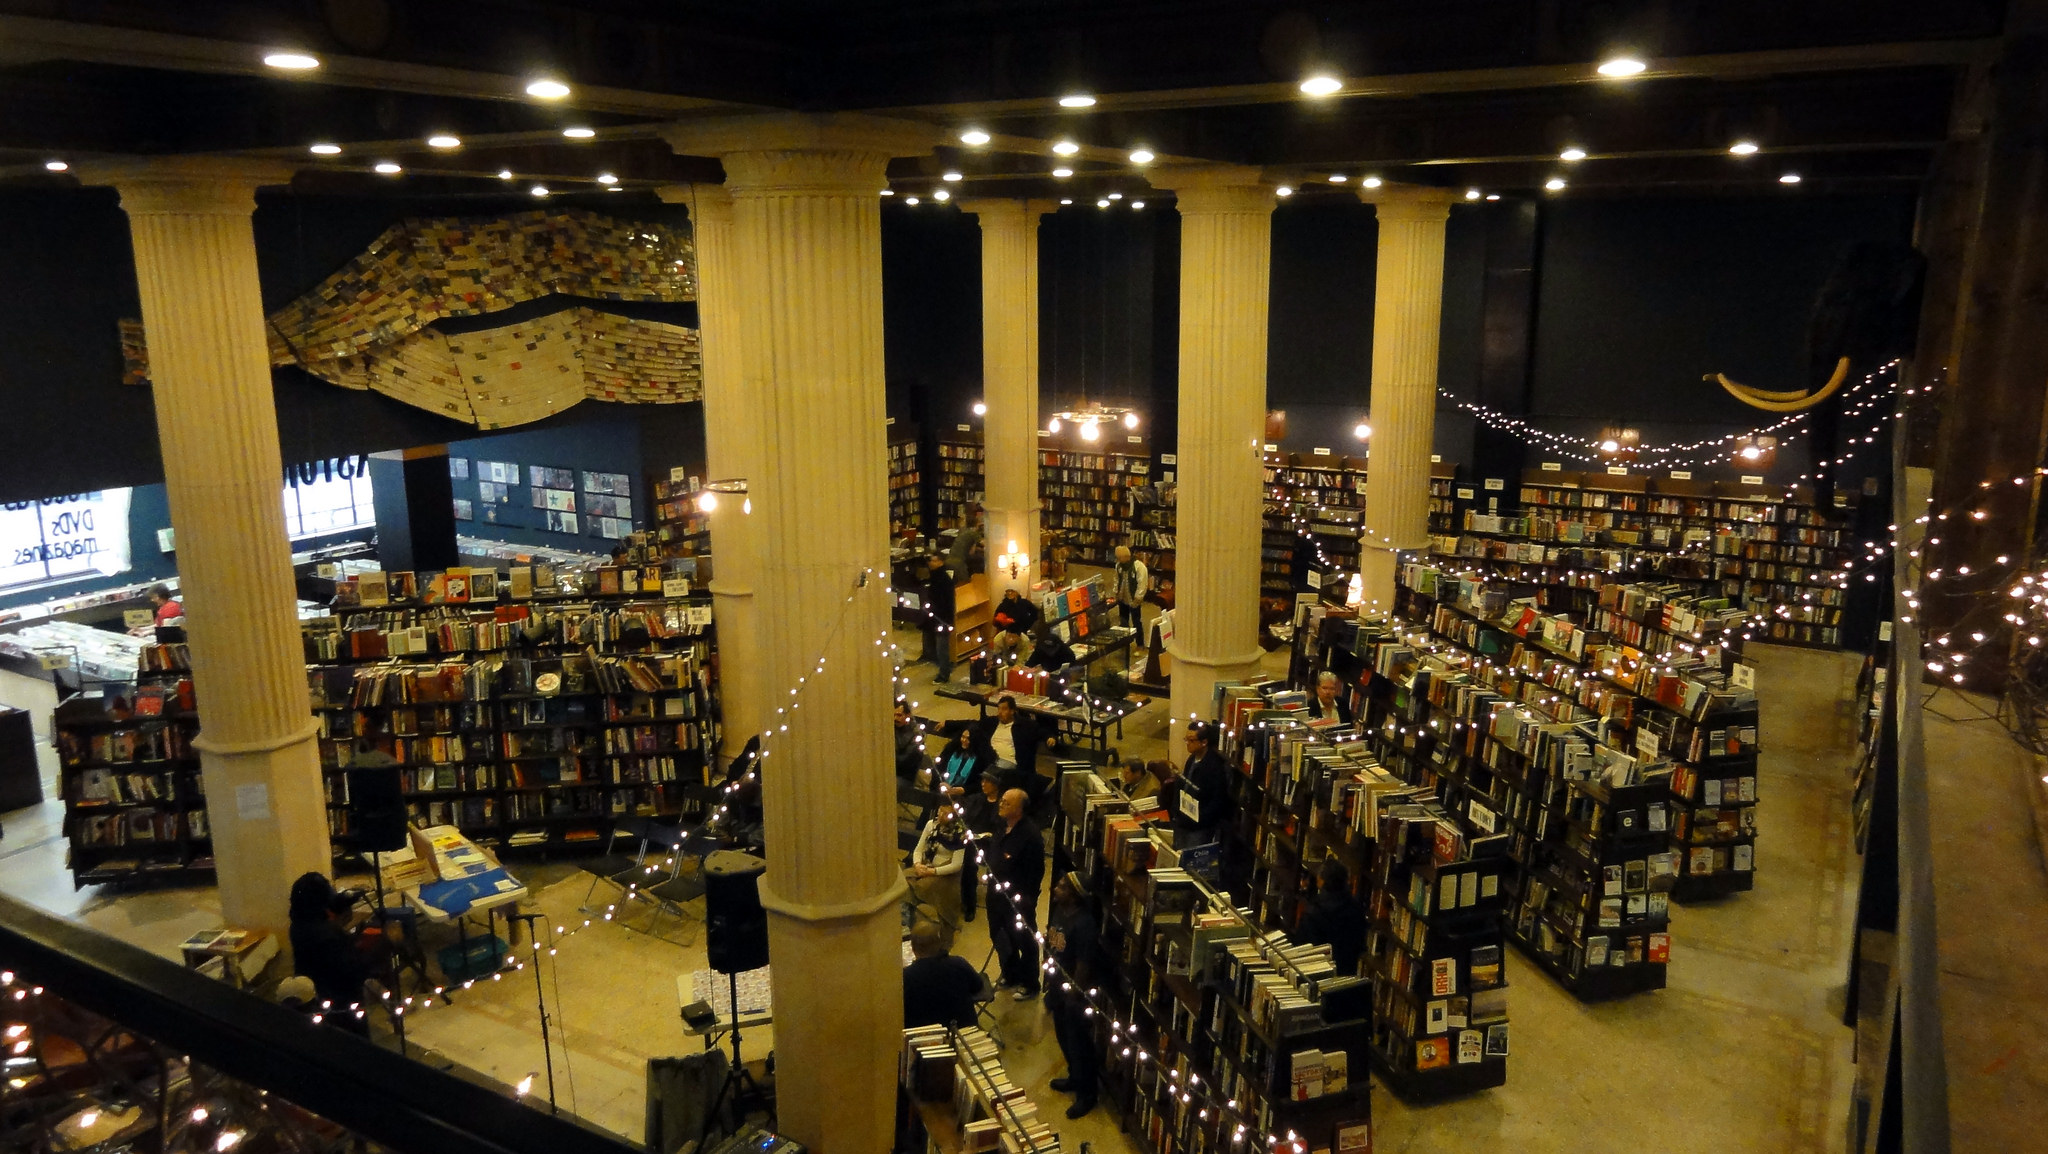 The Last Bookstore, Los Angeles CA, USA, January 6, 2013 | © Courtesy of Omar Bárcena.